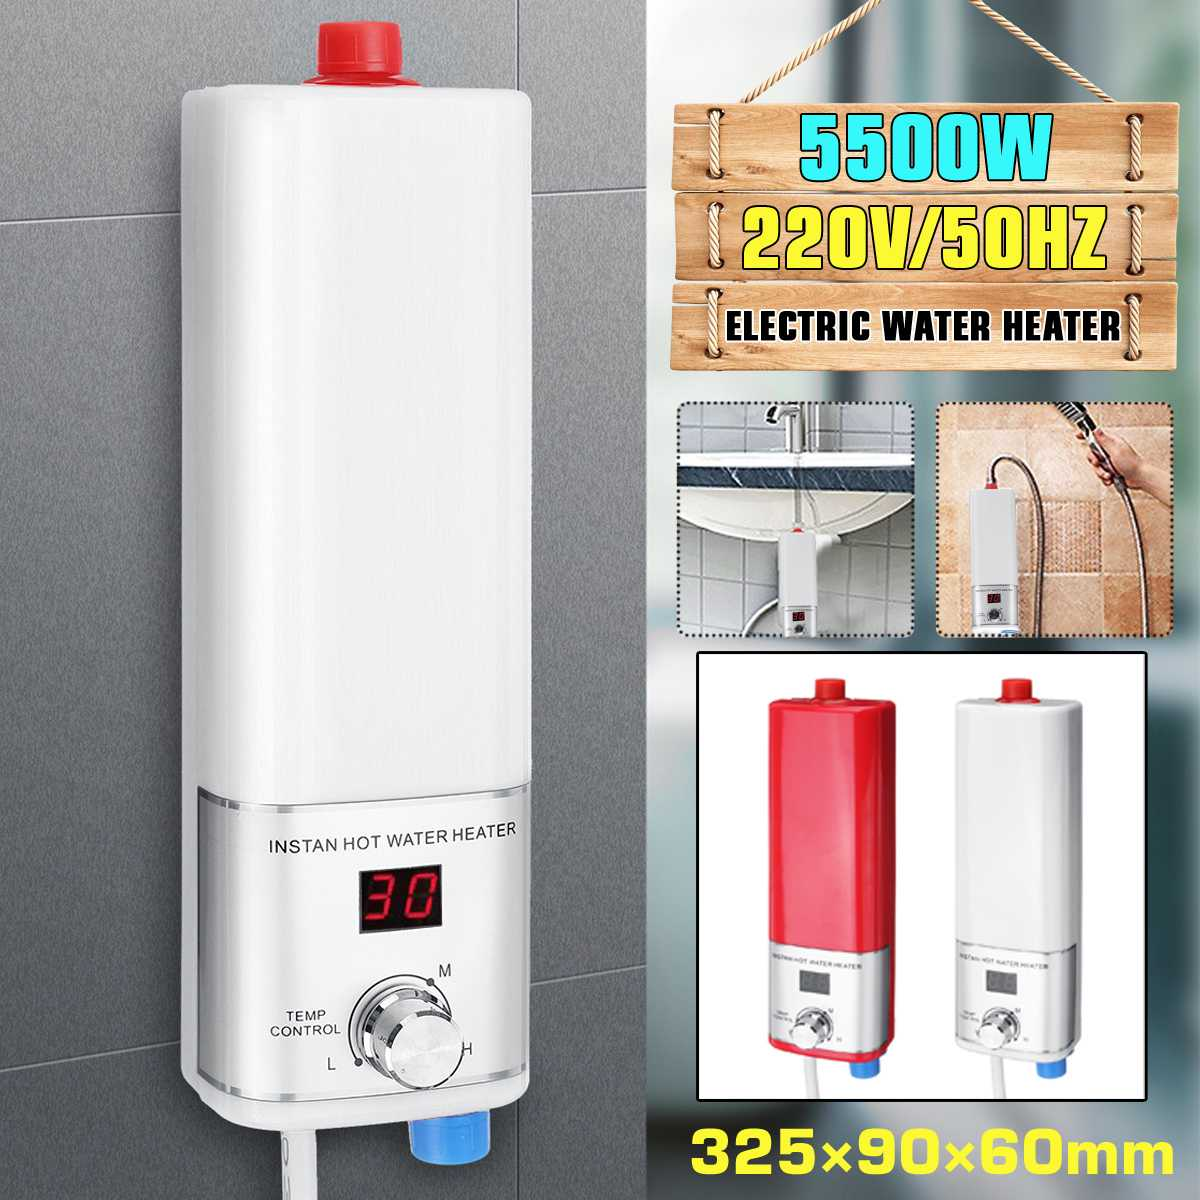 5500W Electric Water Heater Mini Instant Tankless Water Heater Indoor Shower Kitchen Bathroom Water Heater Temperature Control